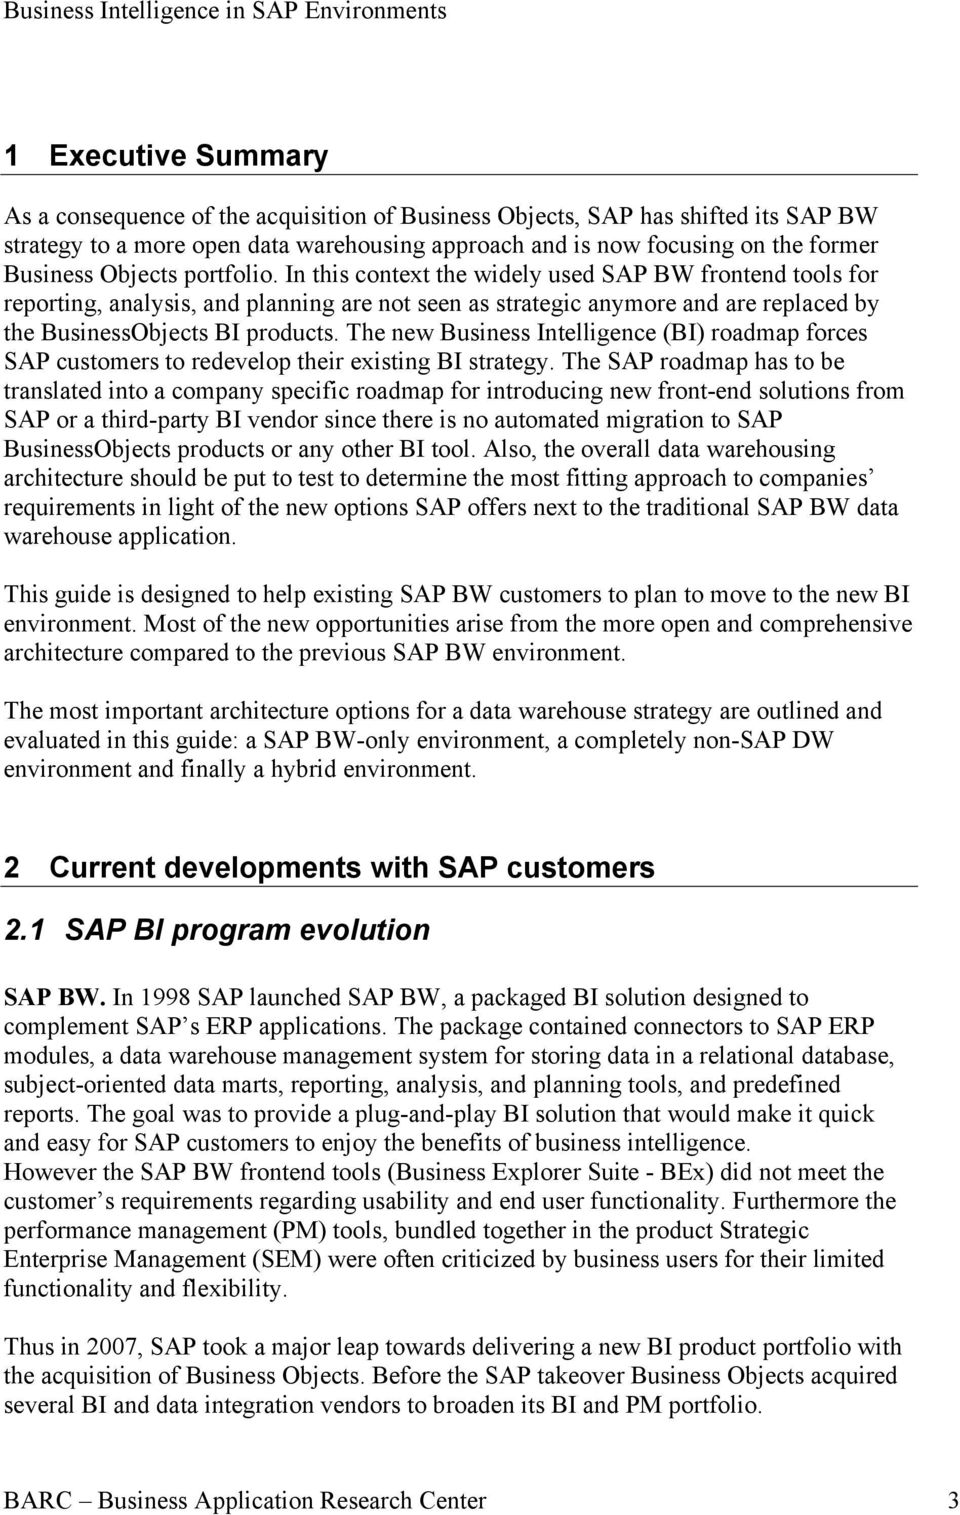 The new Business Intelligence (BI) roadmap forces SAP customers to redevelop their existing BI strategy.